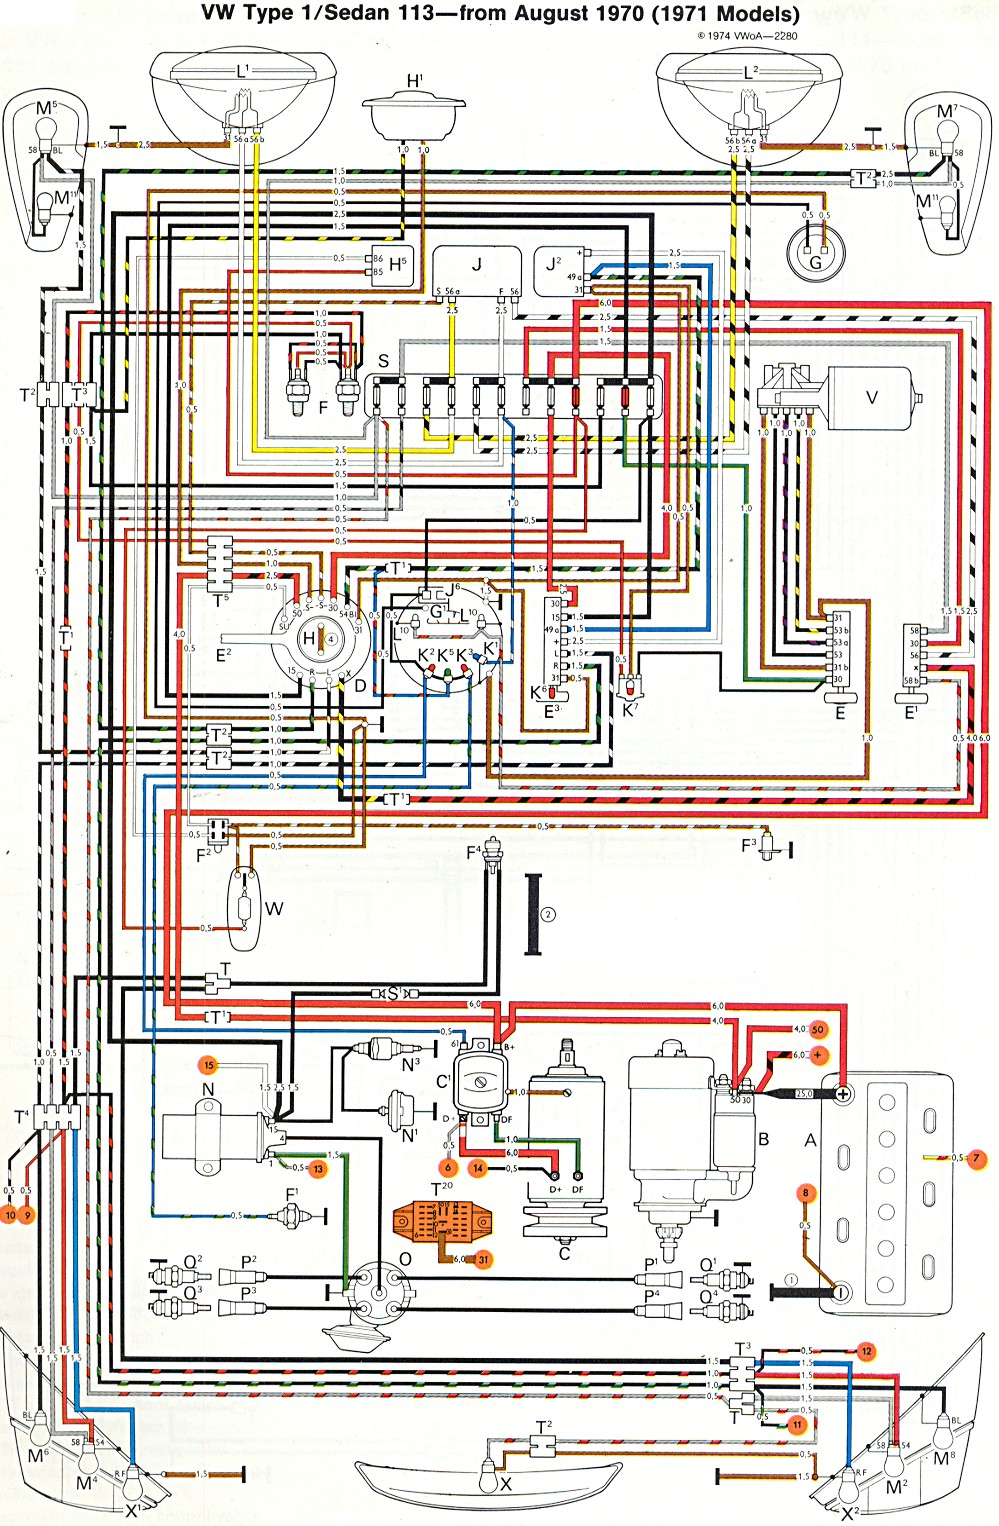 1965 vw bug wiring thesamba.com :: beetle - late model/super - 1968-up - view ... 1968 vw bug wiring